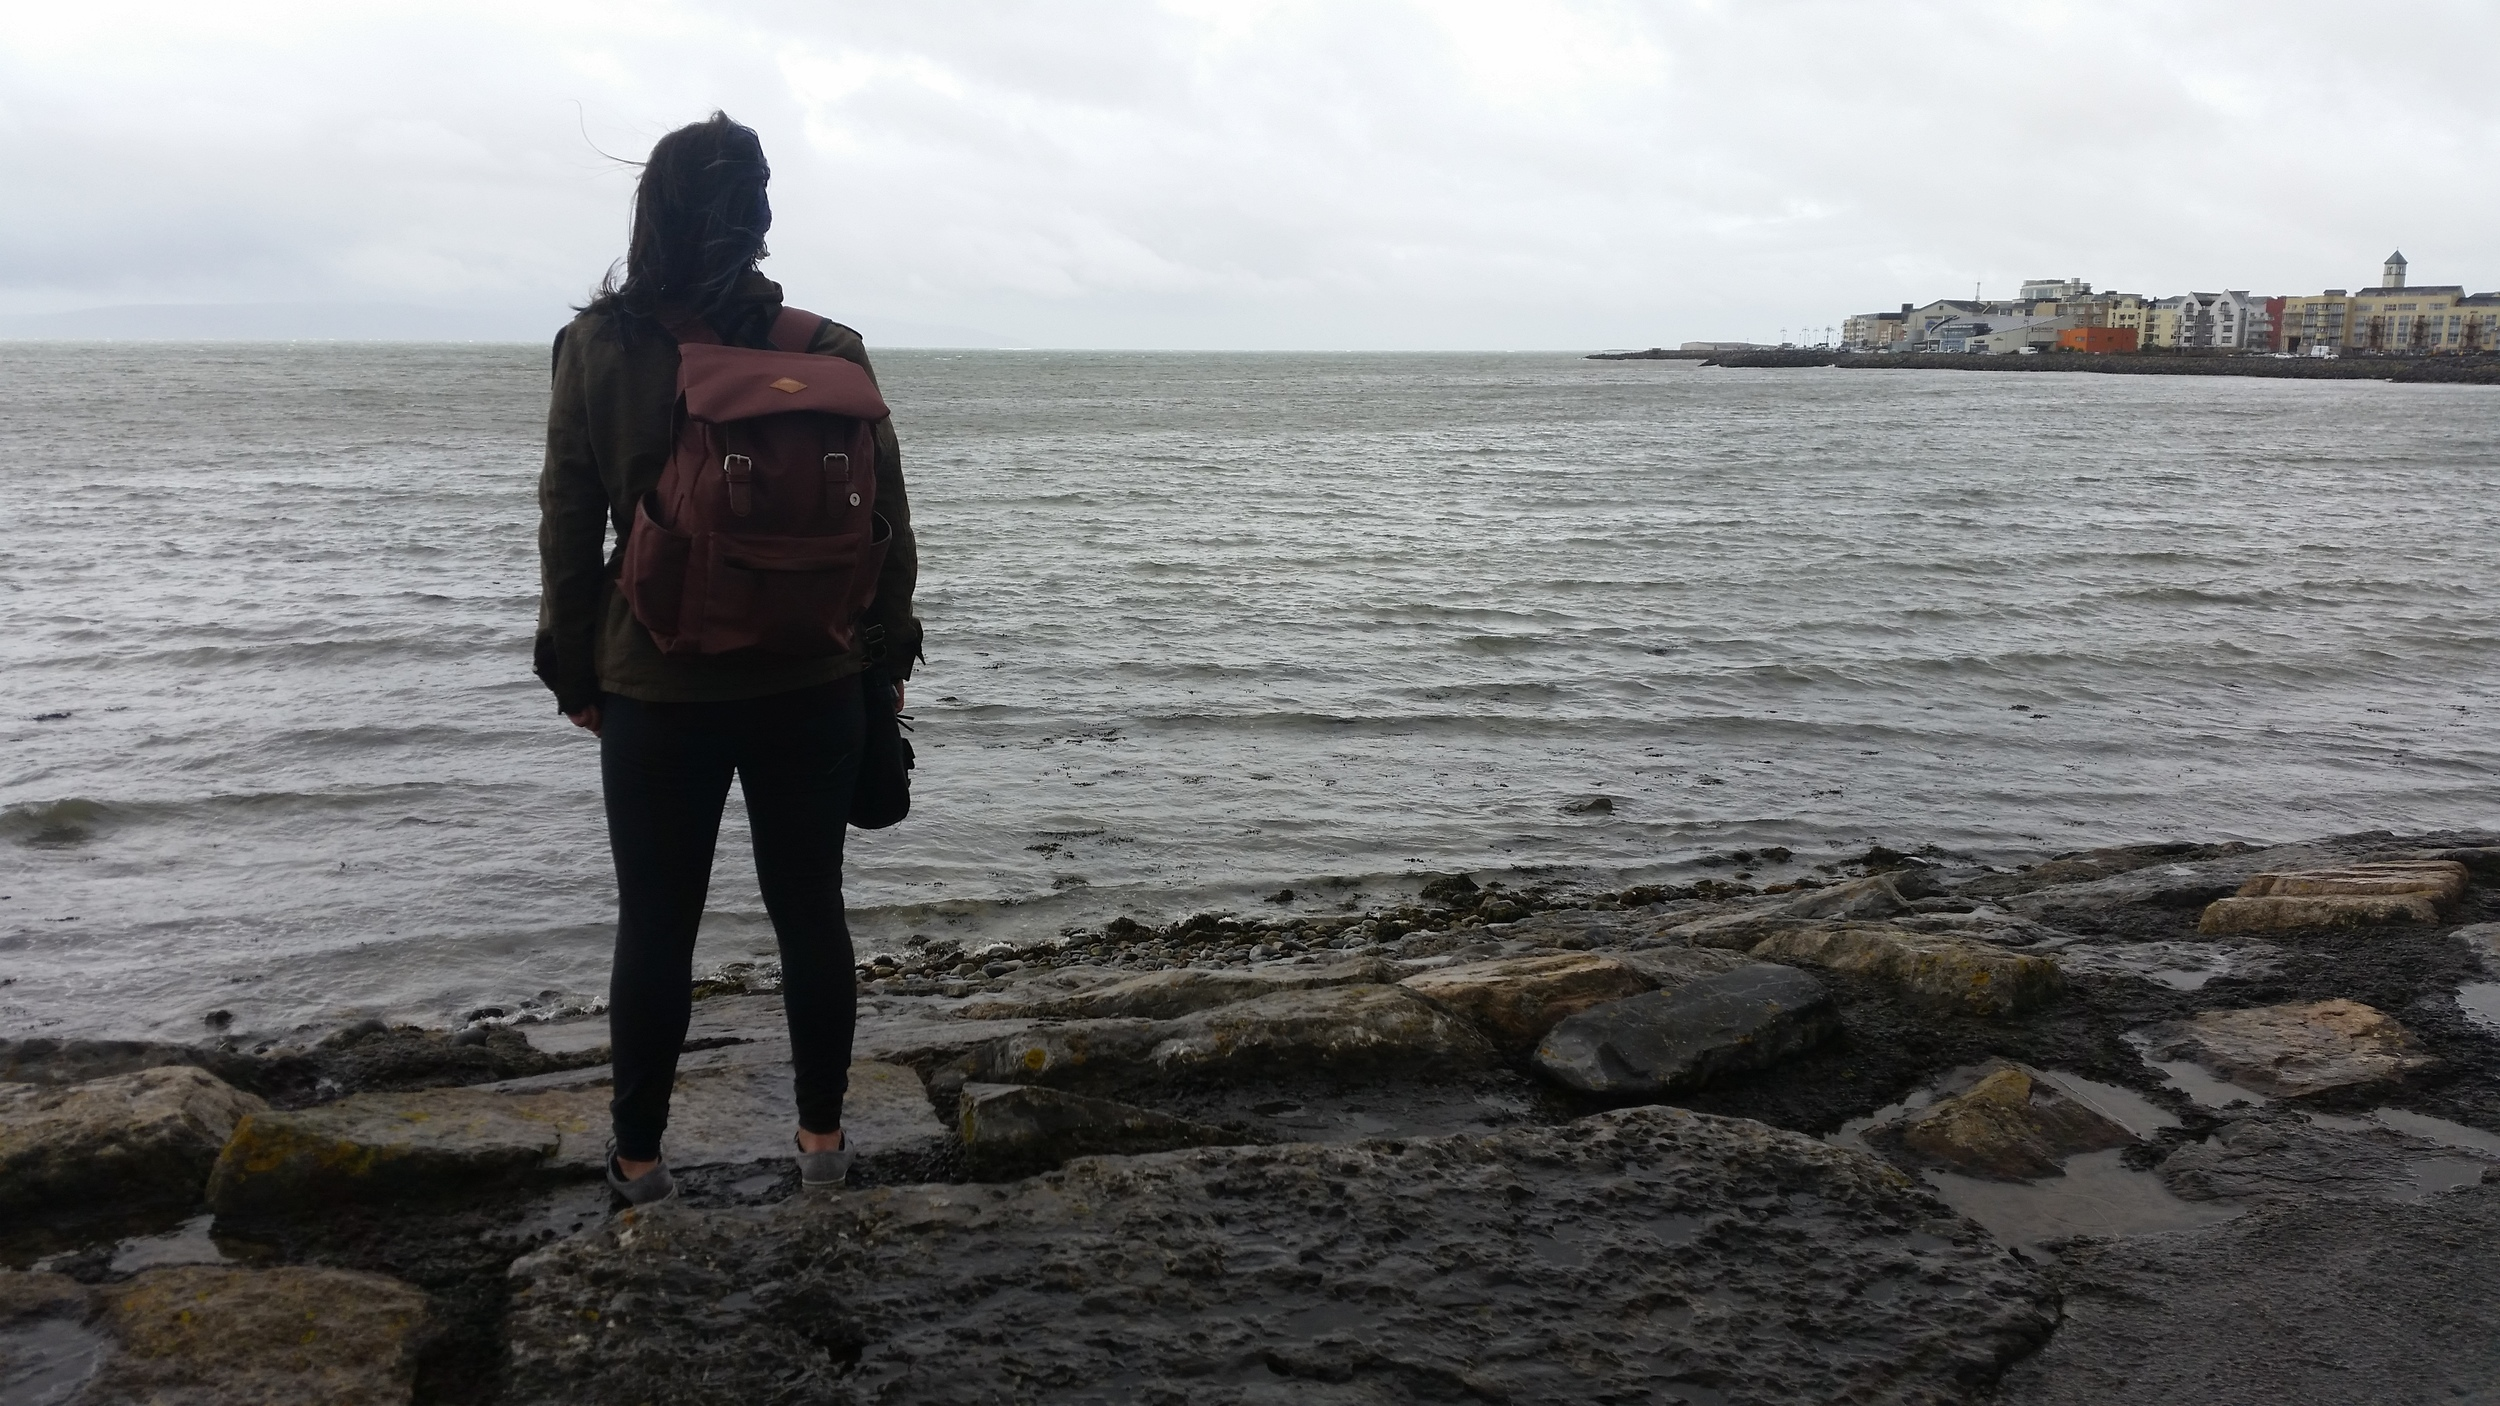 Galway is beautiful